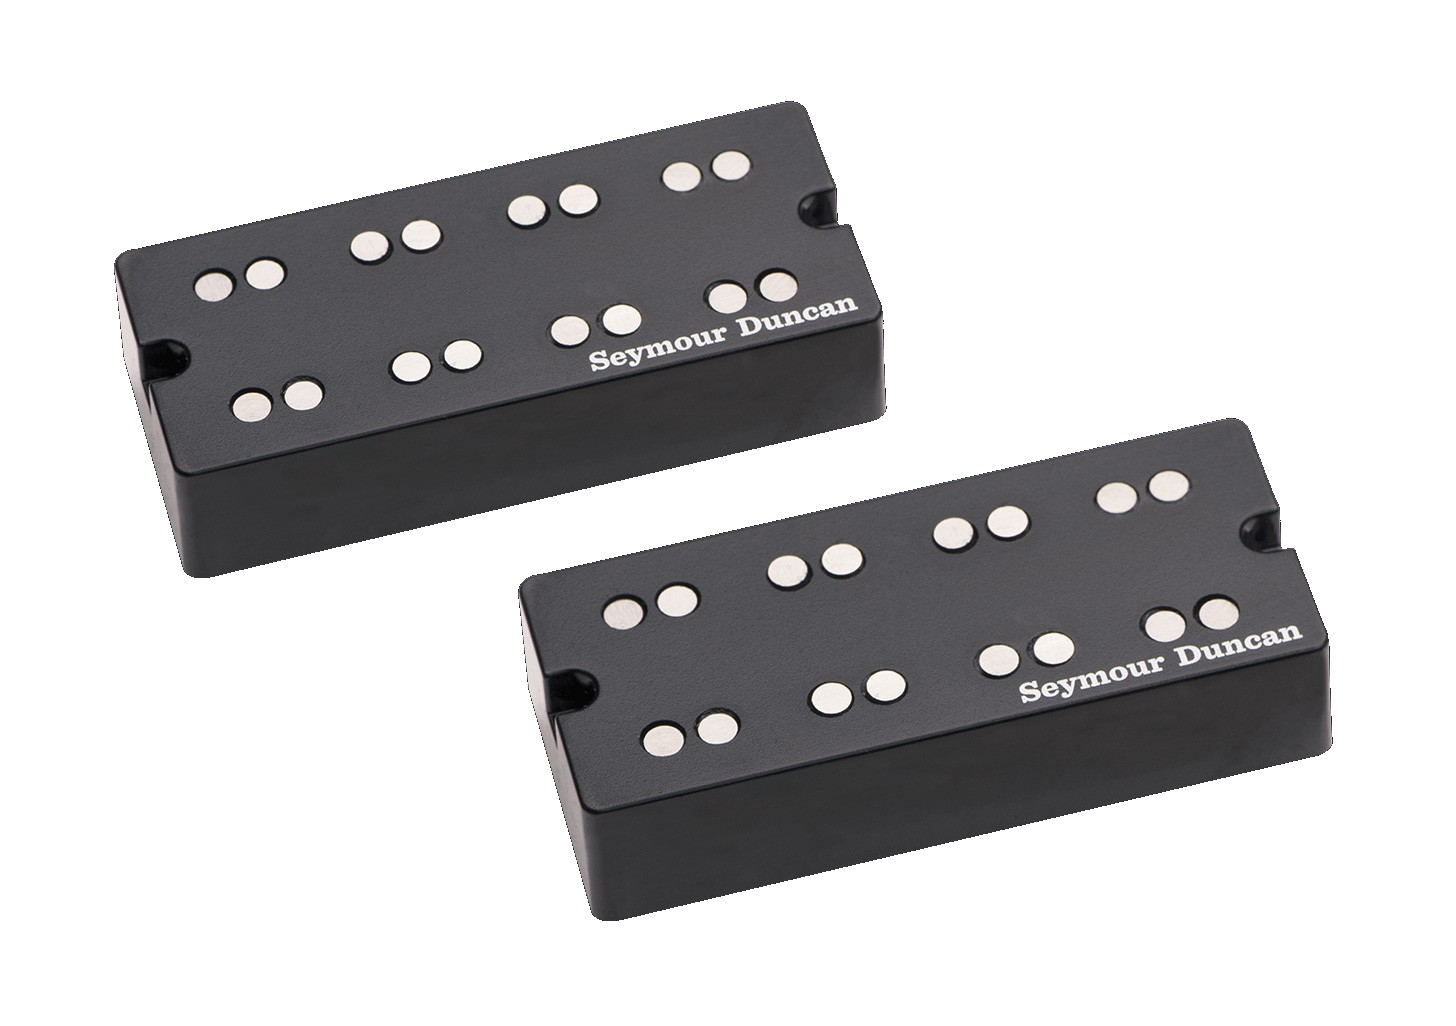 Seymour Duncan SSB NYC Dual Coil Pickups - Best Bass Gear